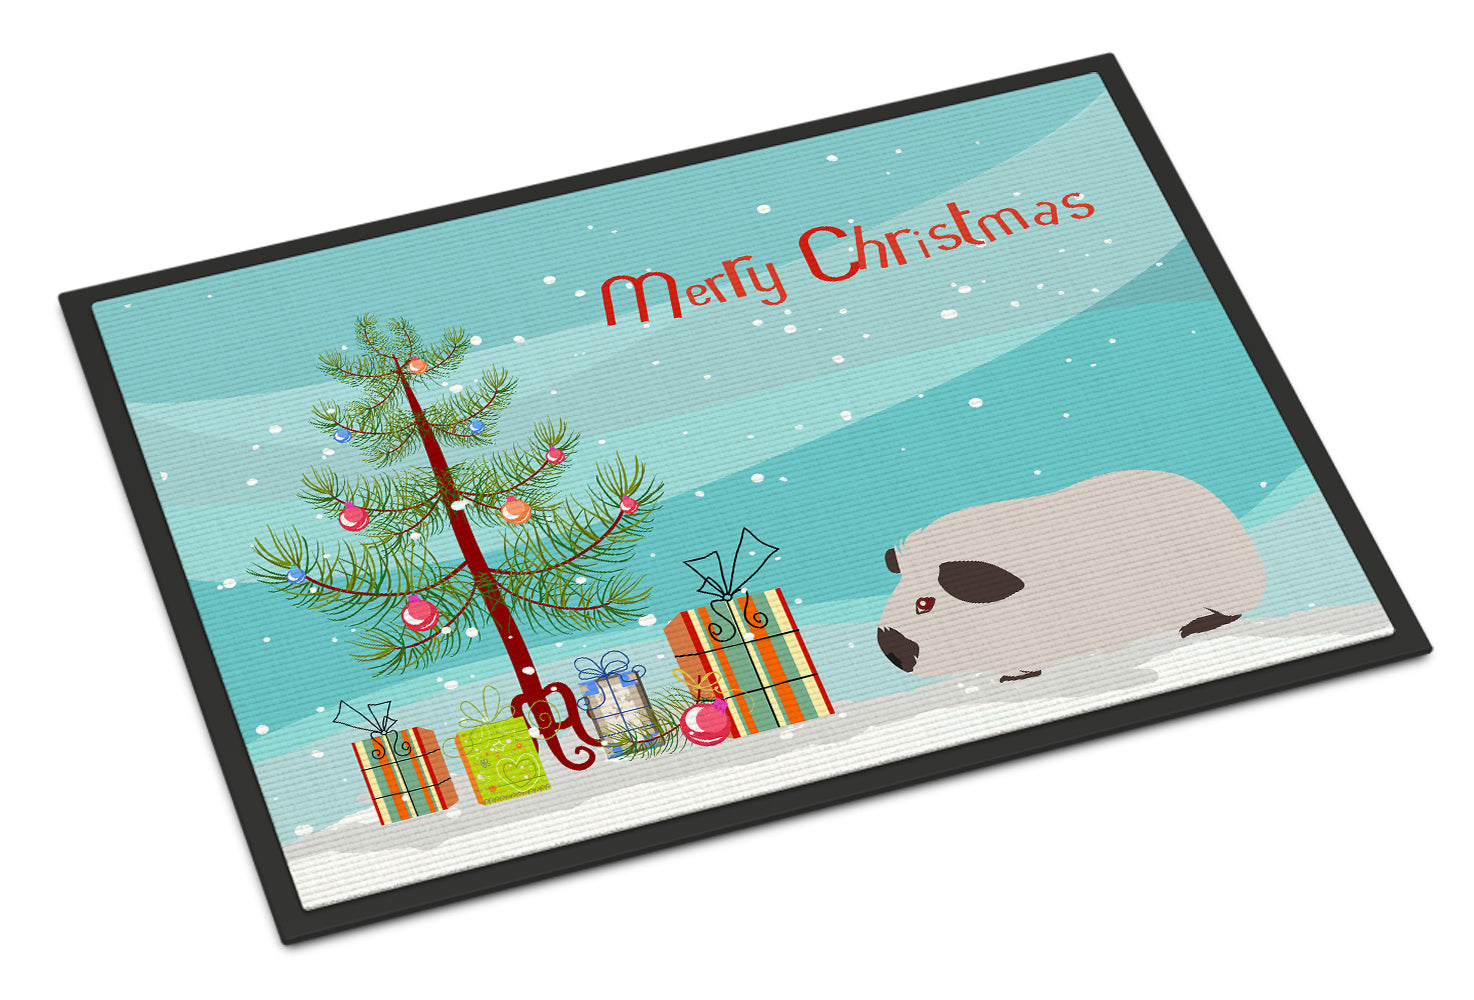 Himalayan Guinea Pig Merry Christmas Indoor or Outdoor Mat 18x27 CK4441MAT by Caroline's Treasures